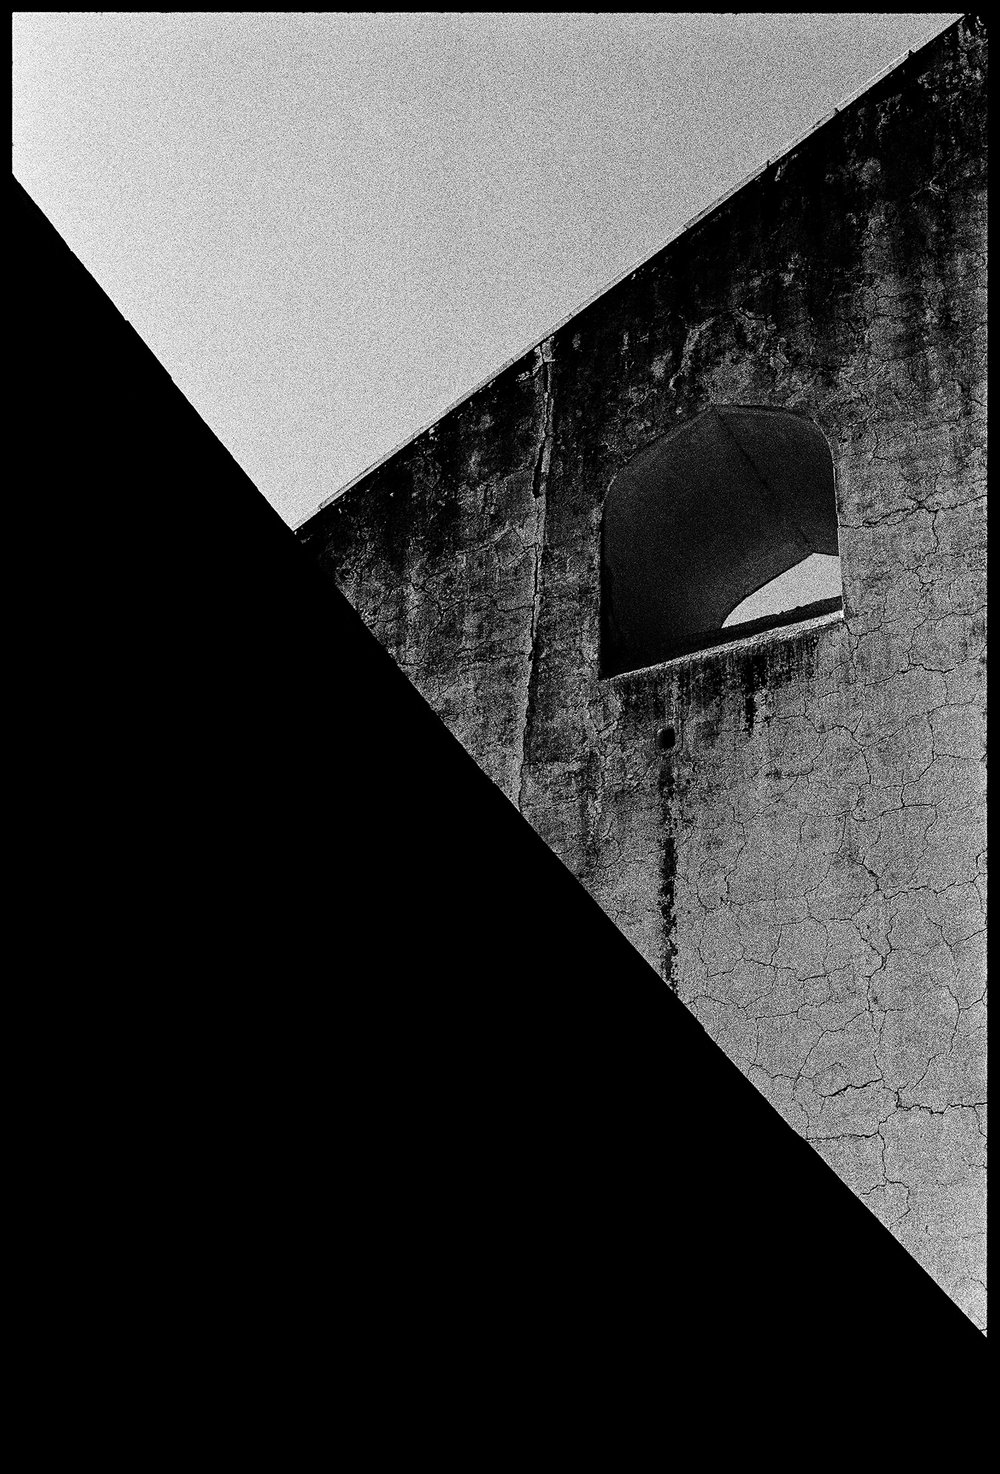 132_GALLERY_Jantar-Mantar-61_SURFACEMAG-SIMON-CHAPUT-PHOTOGRAPHY.jpg